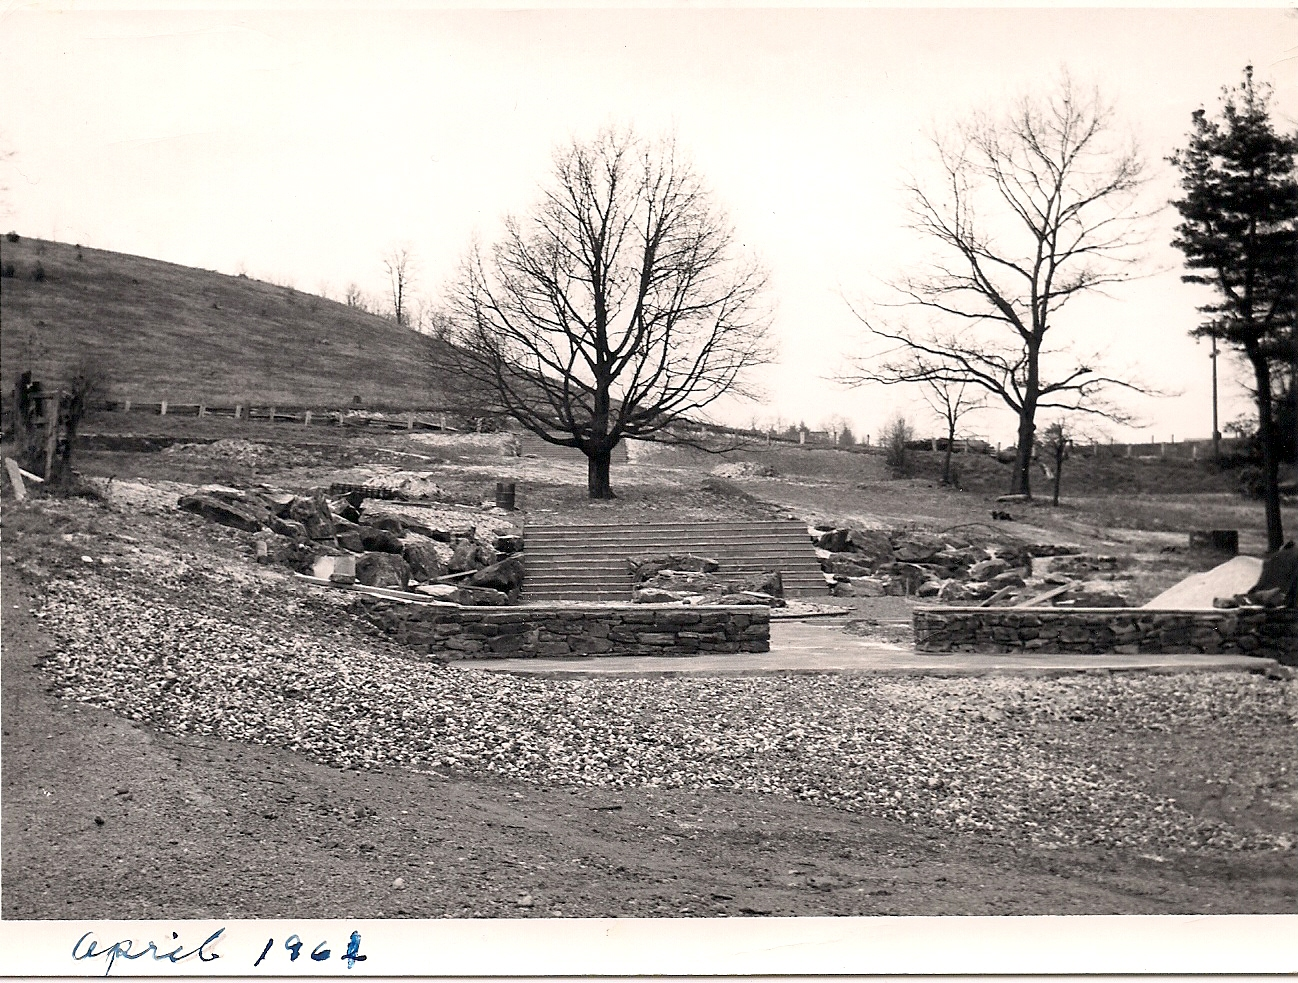 1961 VIEW OF NATIVE GARDENS - BEFORE PLANTING